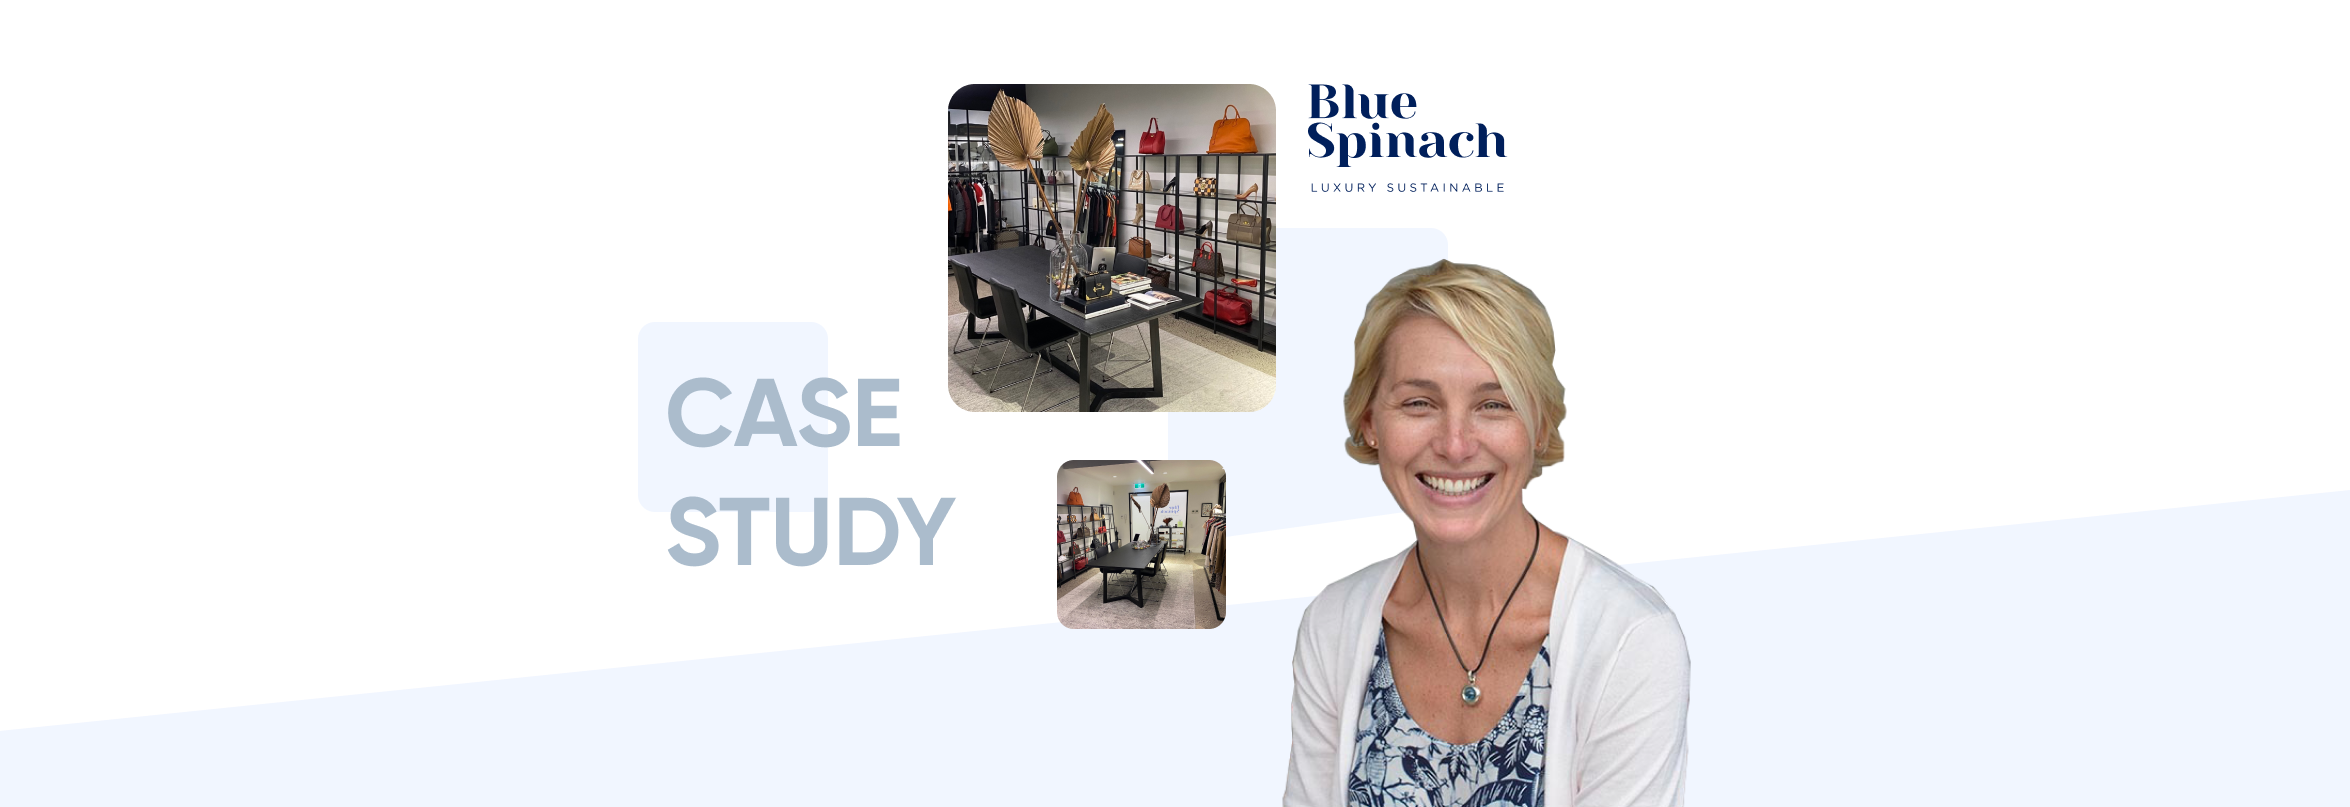 Blue Spinach Sustainable Luxury Resale and Retail